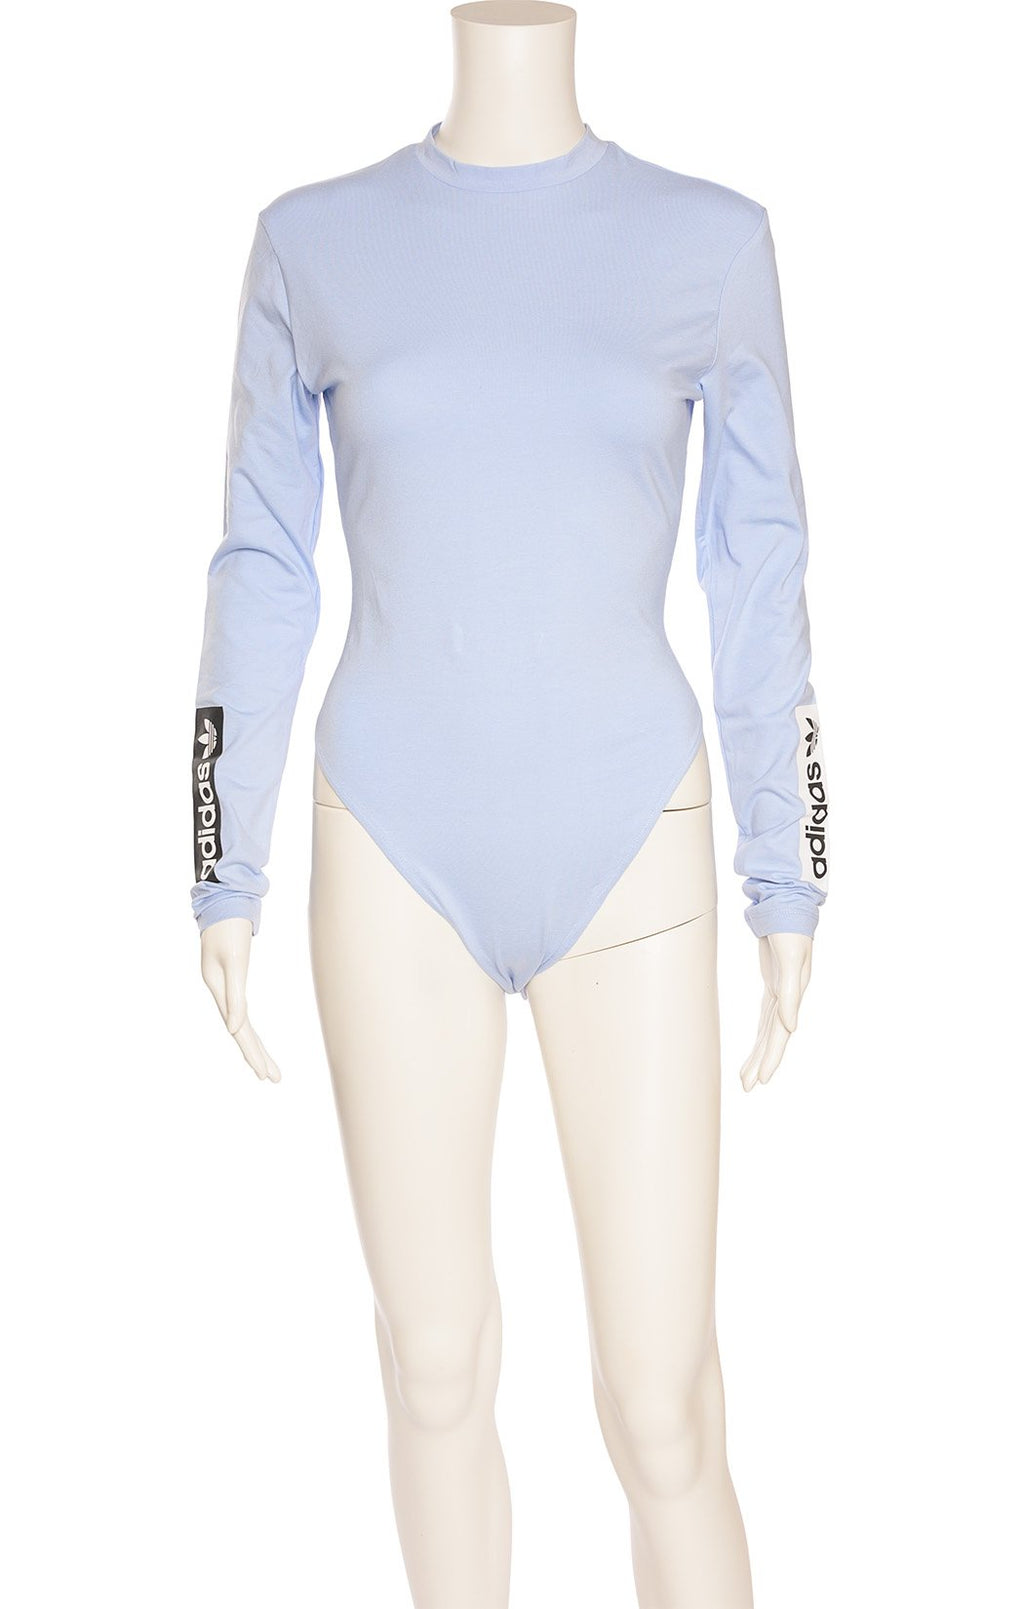 Front view of ADIDAS with tags Bodysuit Size: Medium